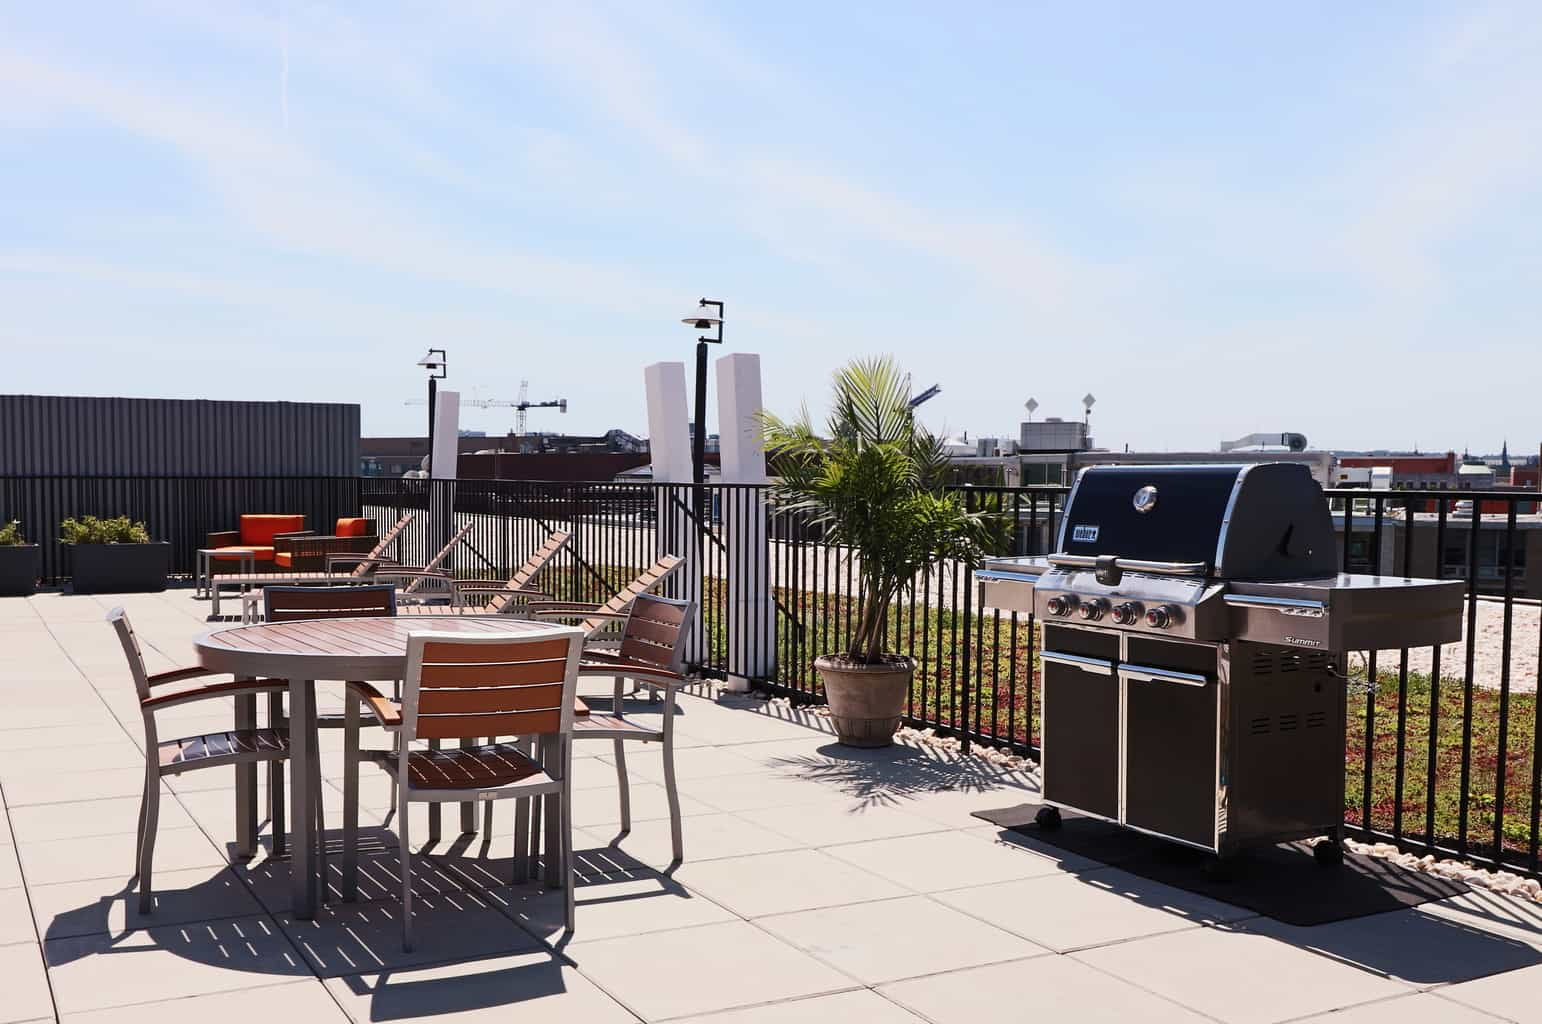 Hamilton House Rooftop Patio With Grill and Chairs